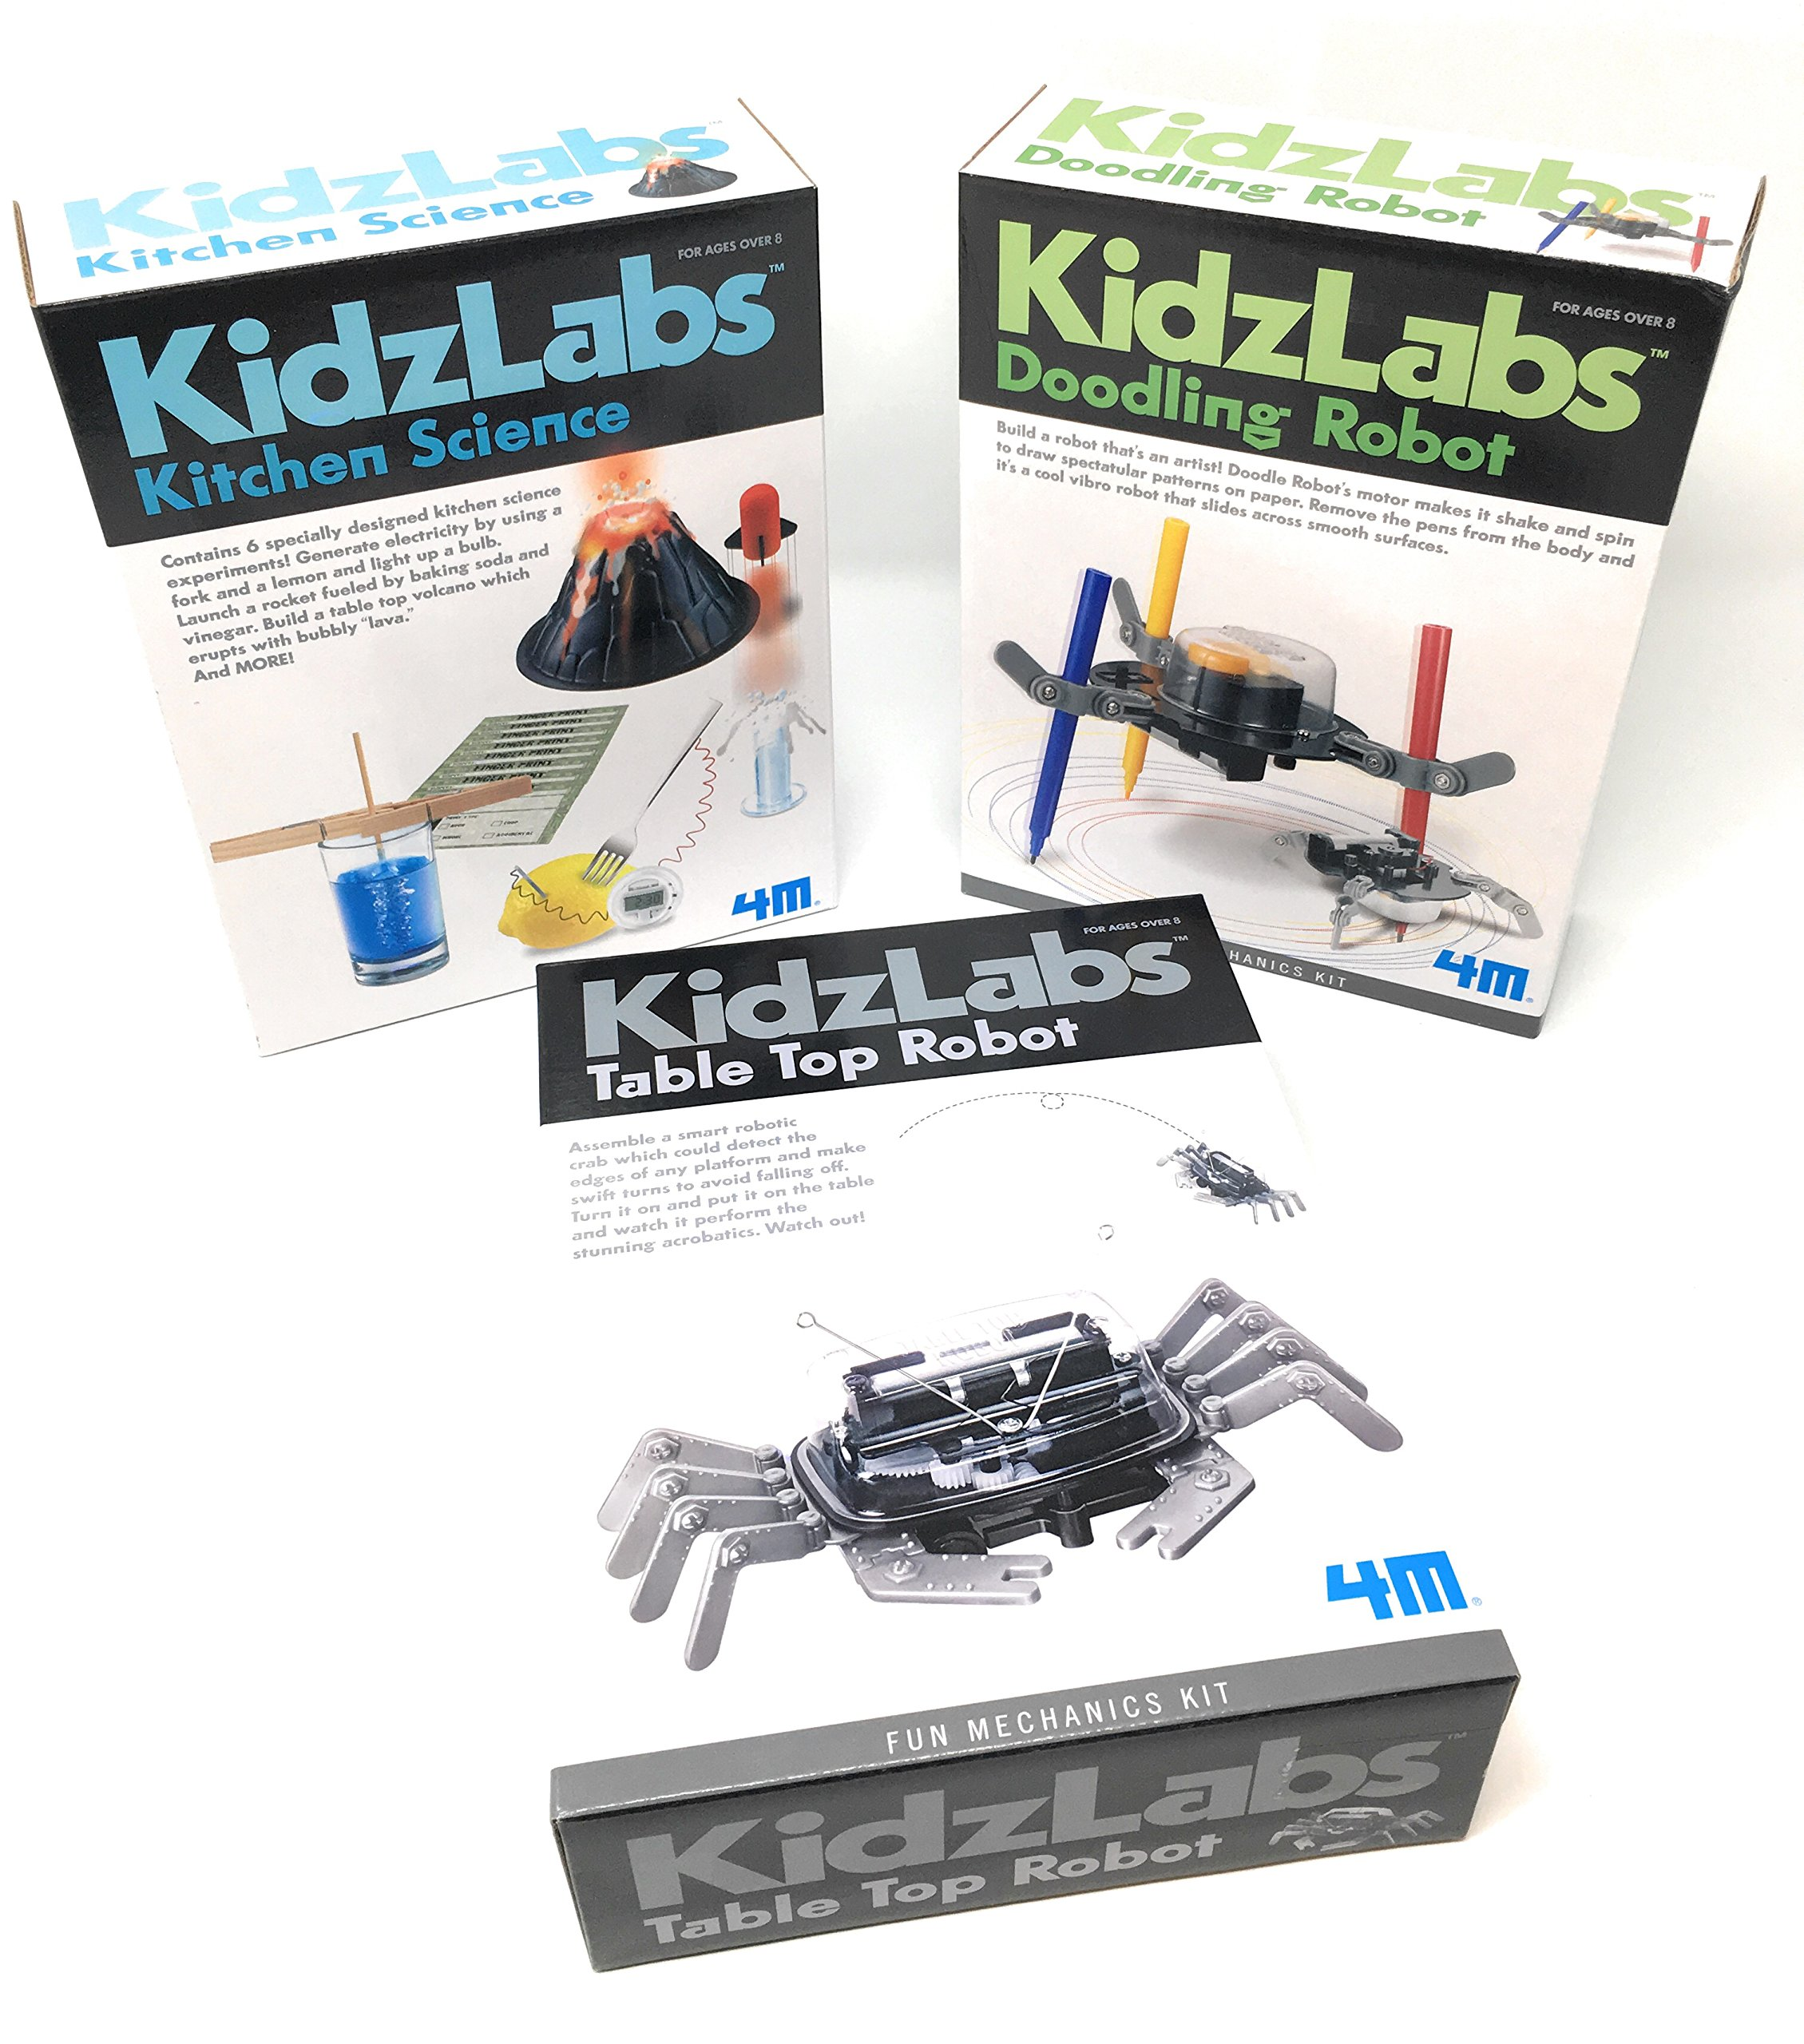 KidzLabs Robot Toys Science Experiments for Kids, Kitchen Science, Table Top Robot, Doodling Robot - Science Kits for Kids - Robot - Robotics for Kids - Batteries/Screwdriver INCLUDED by 4M & MTGS